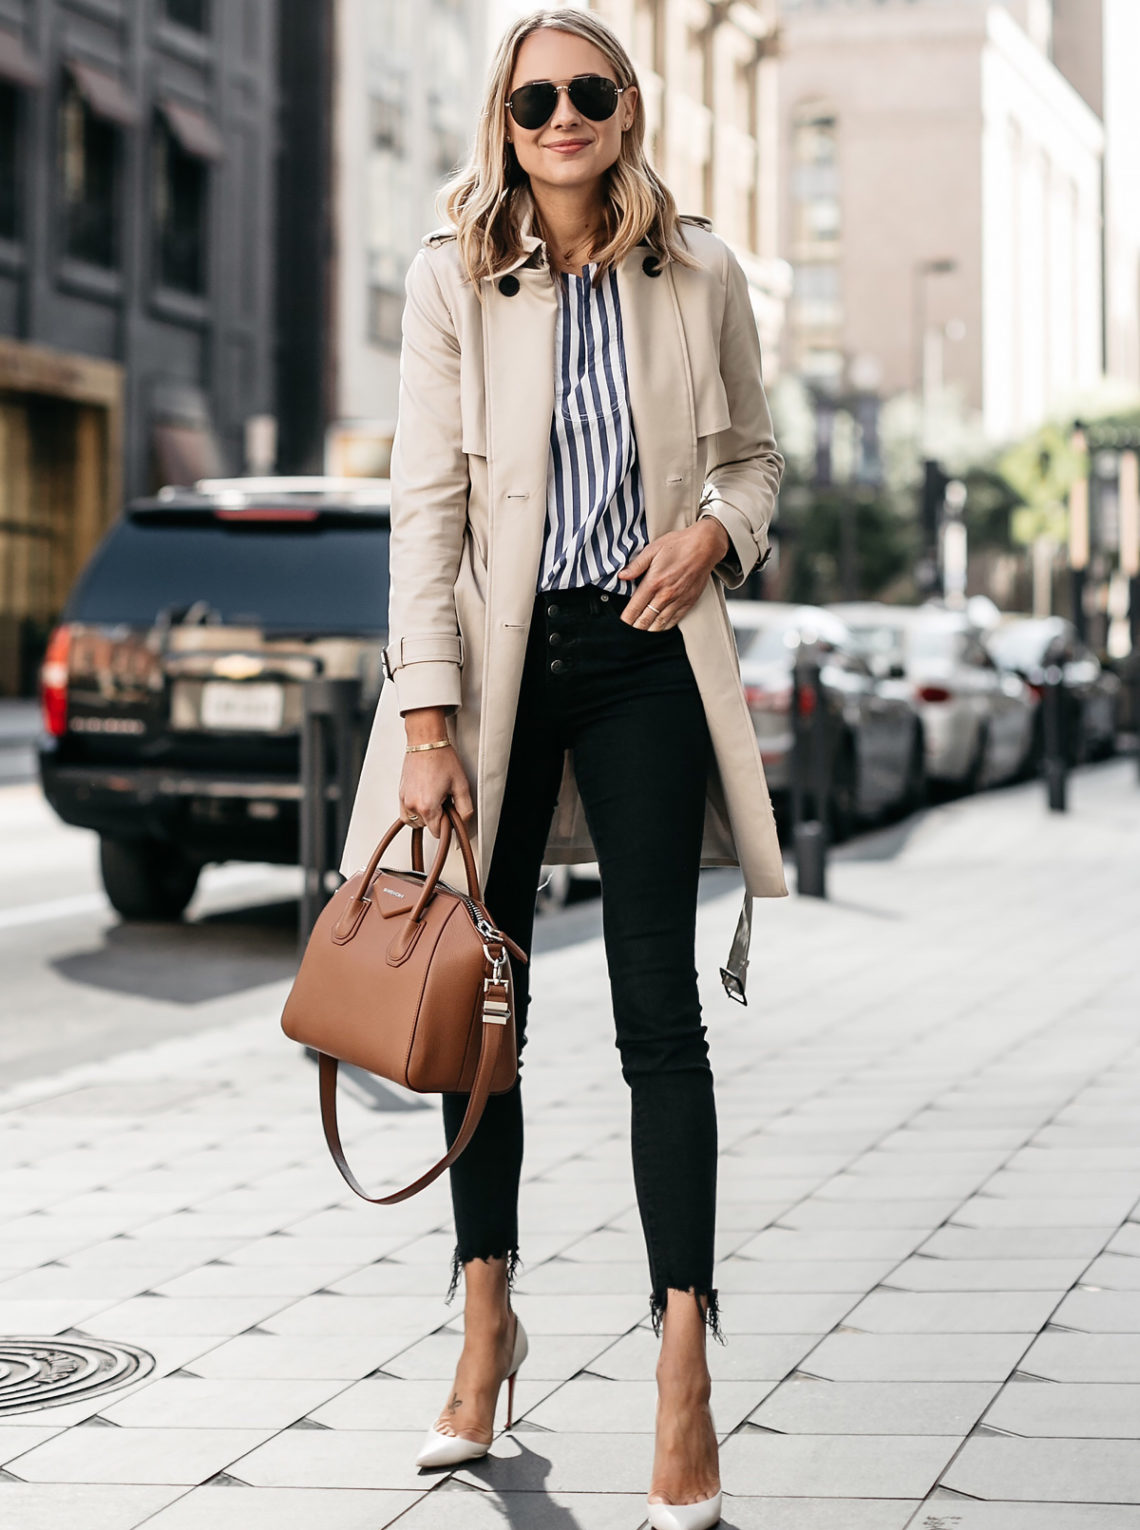 Blonde Woman Wearing Club Monaco Trench Coat Blue White Stripe Shirt Madewell Black Ripped Skinny Jeans Christian Louboutin White Pumps Givenchy Antigona Cognac Satchel Celine Aviator Sunglasses Fashion Jackson Dallas Blogger Fashion Blogger Street Style